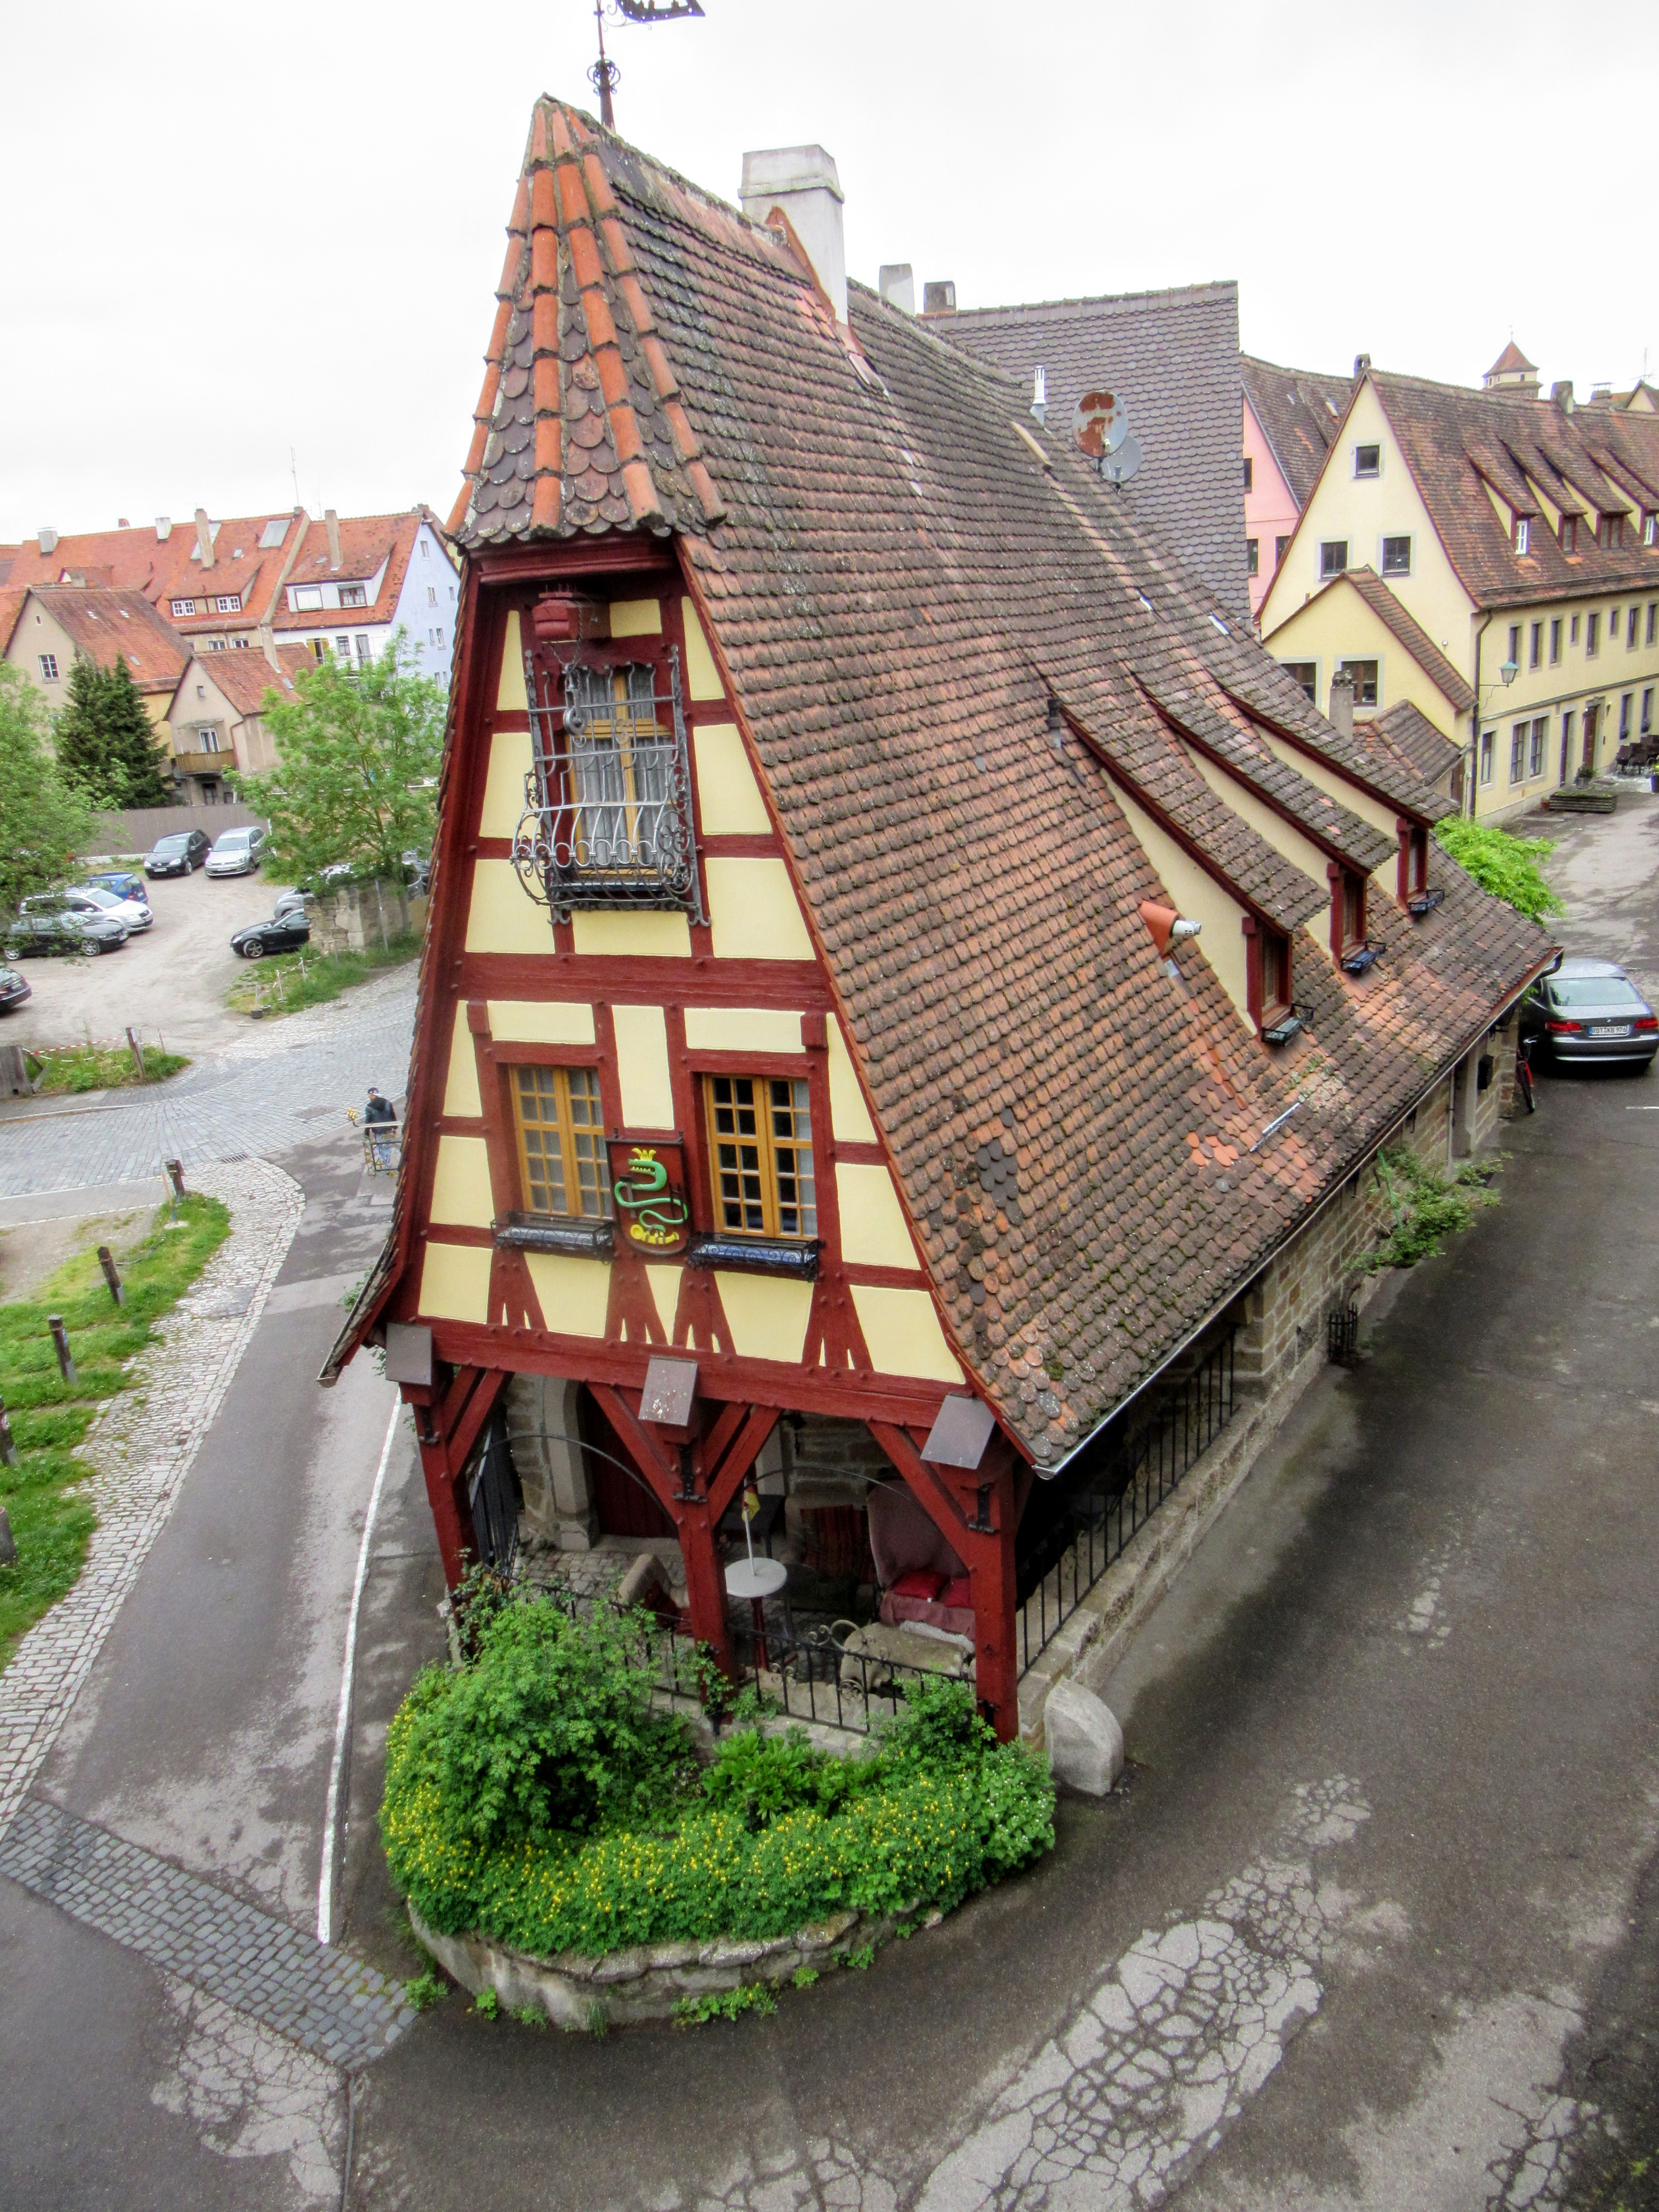 A red and yellow half-timbered house. | Walking Along the Wall of Rothenburg ob der Tauber.